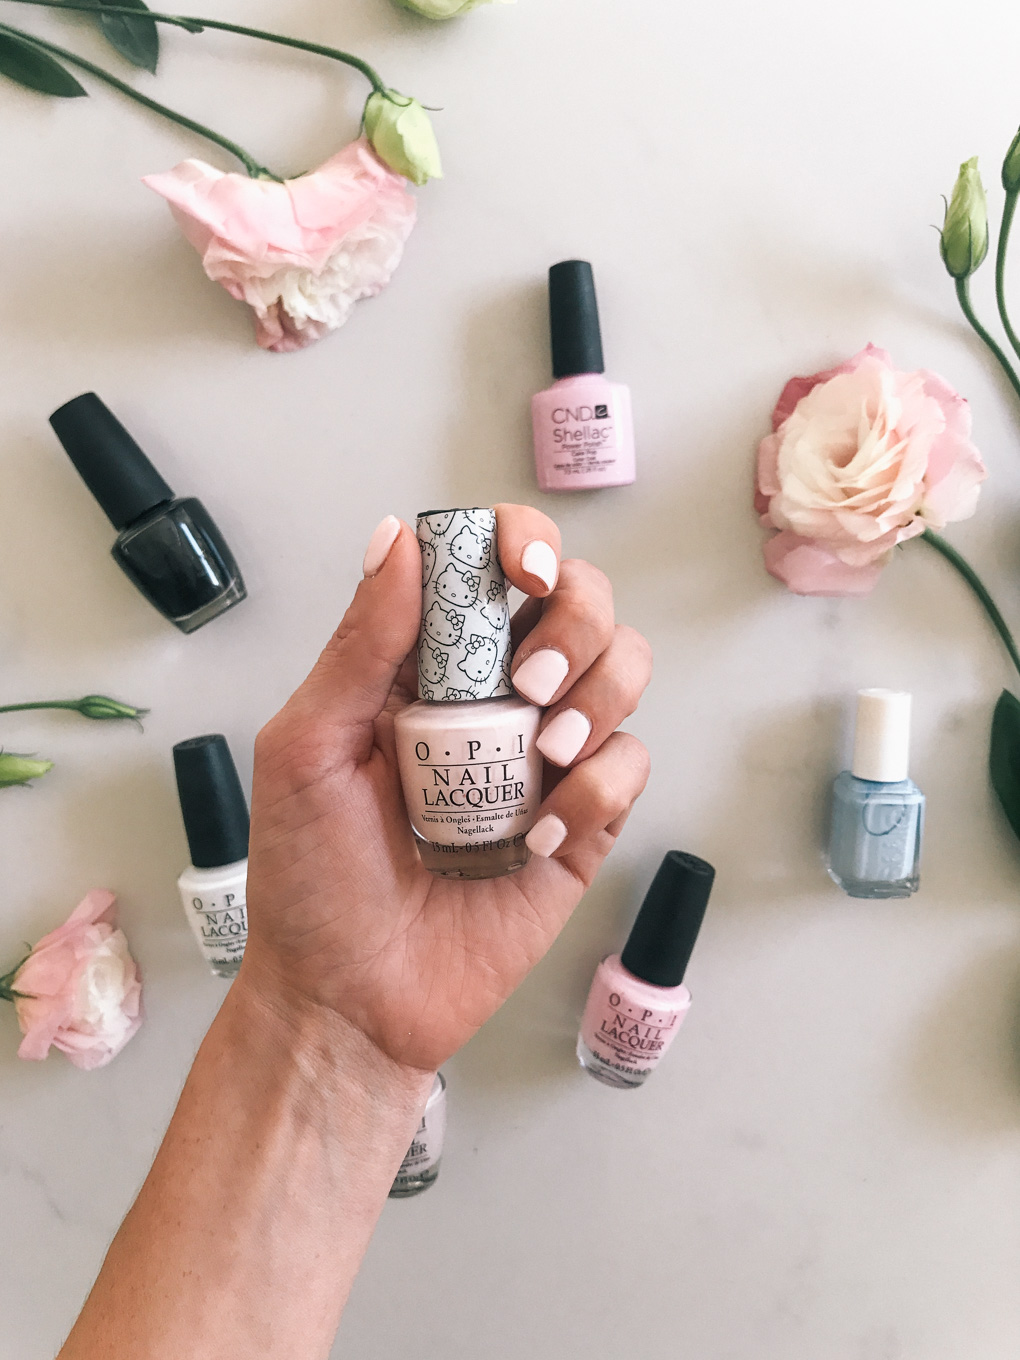 Daryl-Ann Denner shares her favorite opi essie cnd nail polish colors